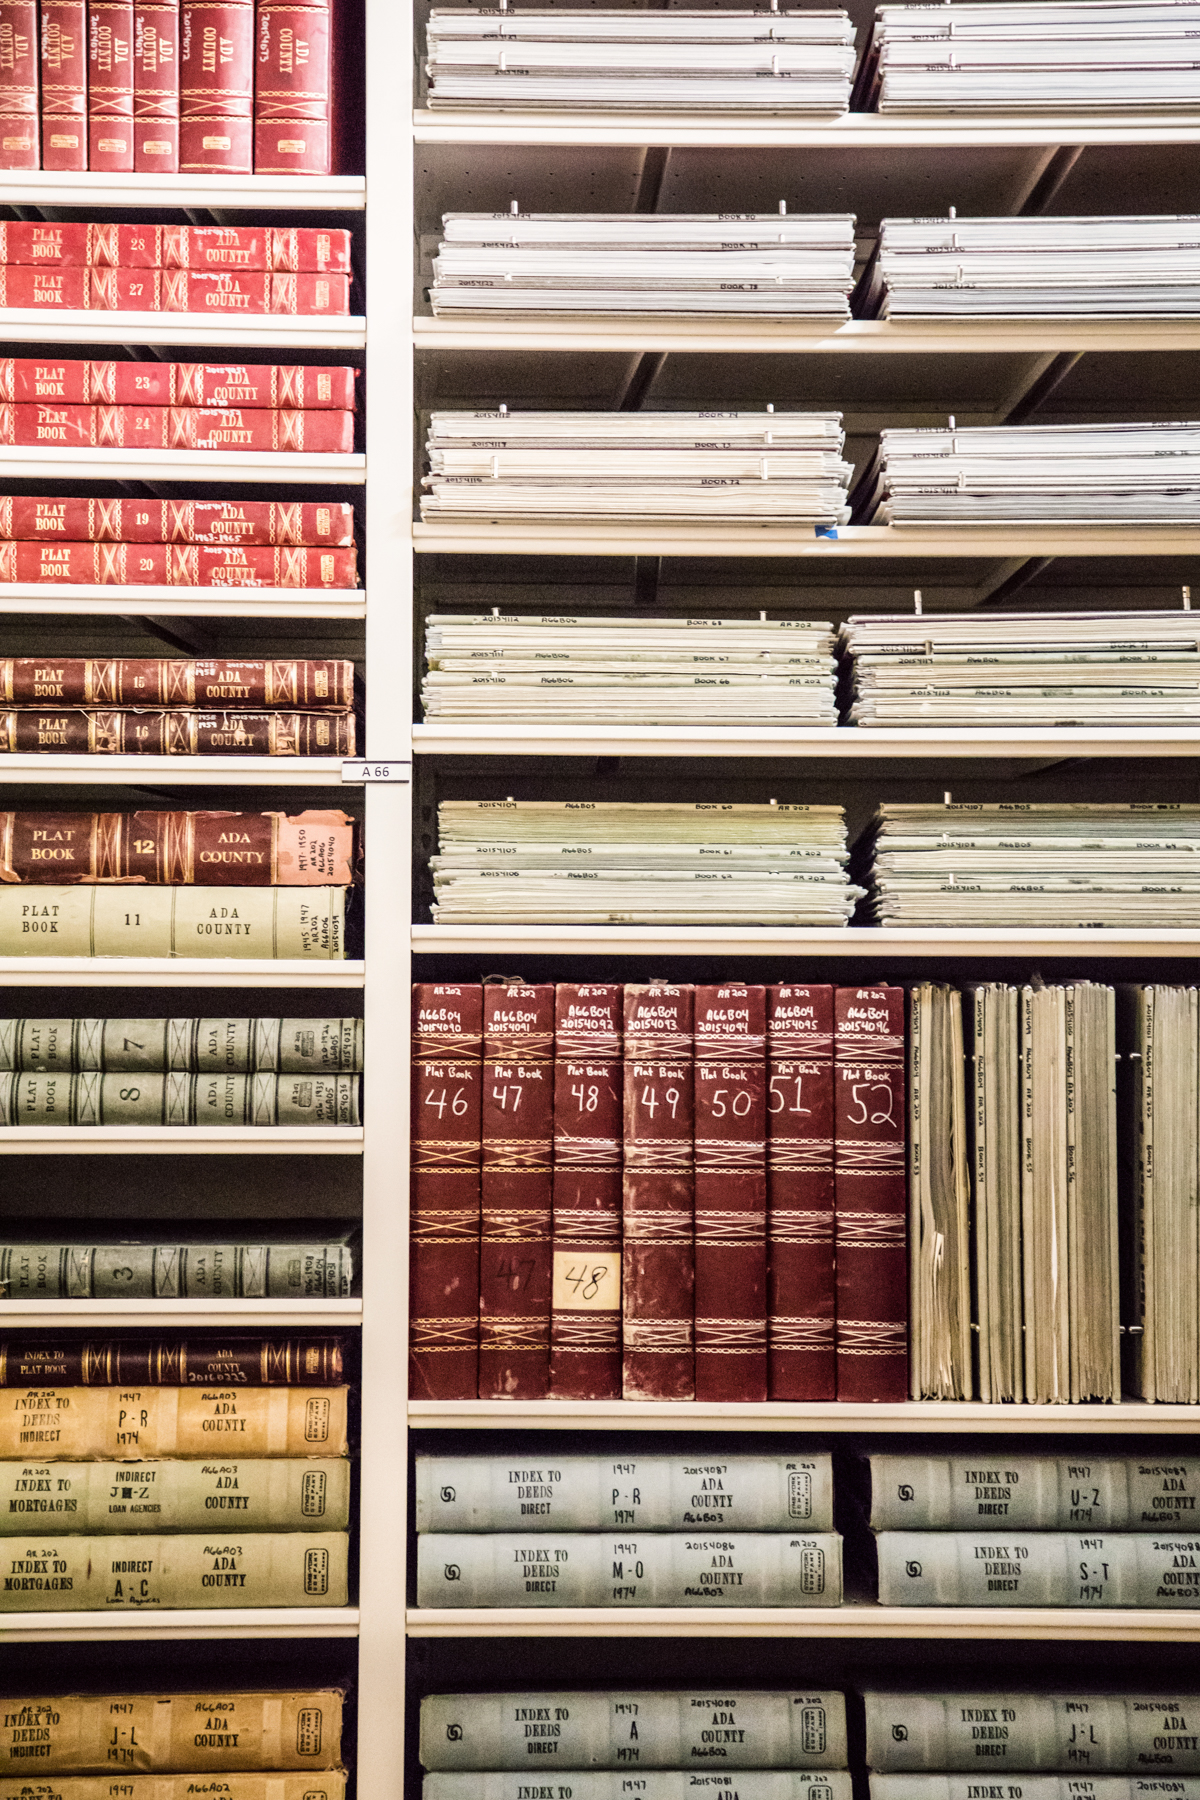 Manuscript and archival materials on shelves